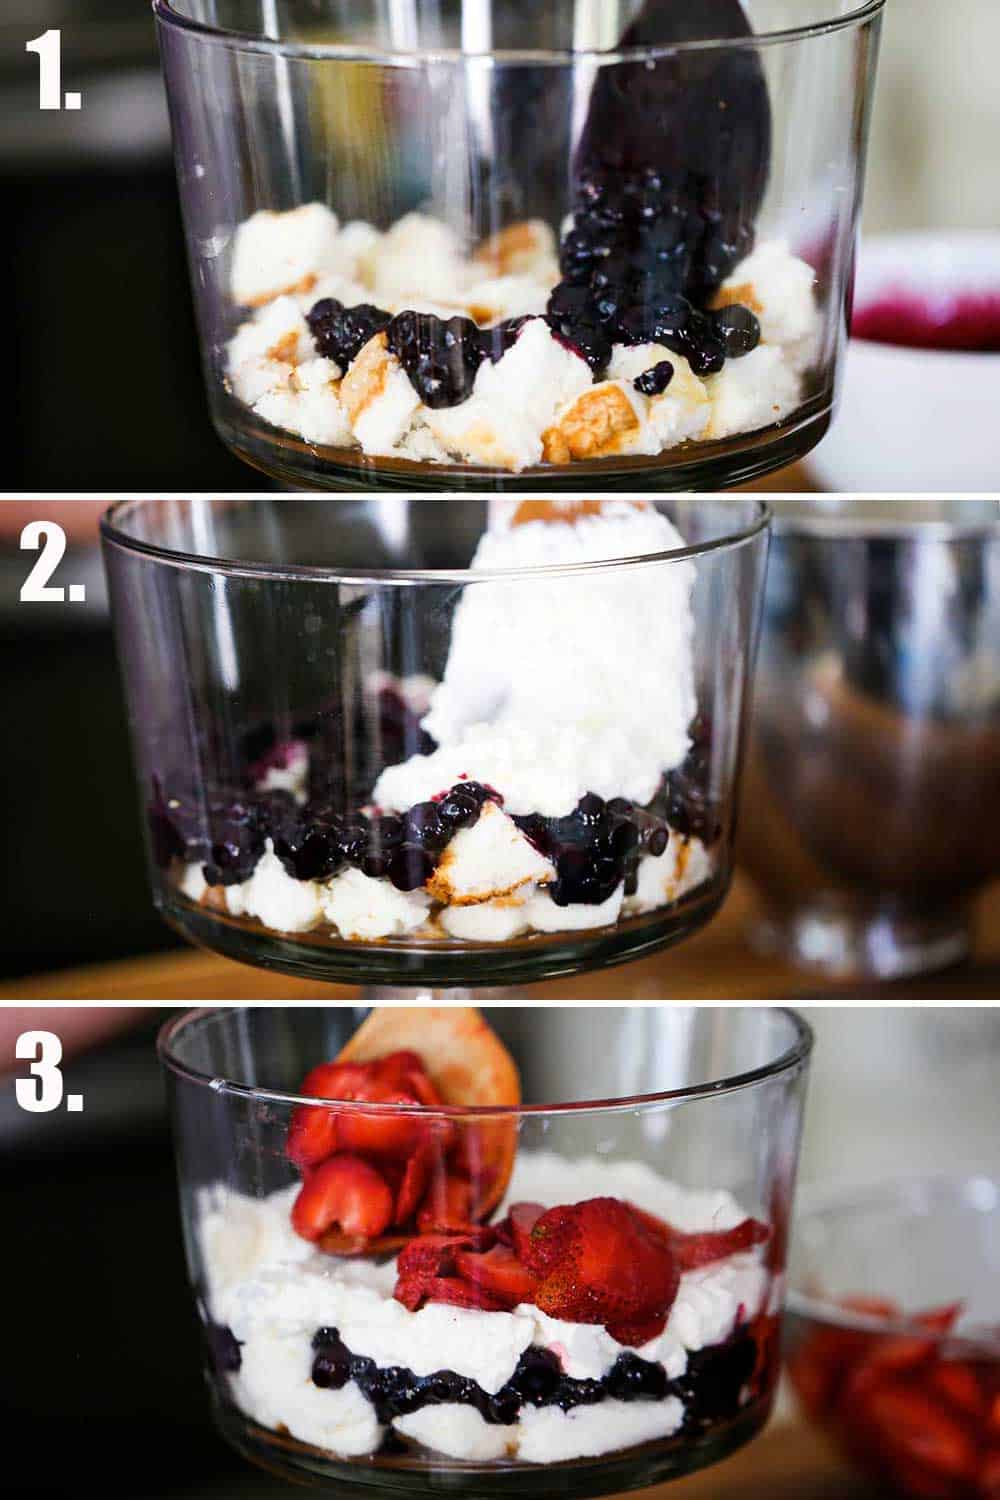 A spoon layering a blueberry sauce over pieces of angel food cake in a trifle dish, and then cream being spooned over the blueberries, and then strawberries being added.